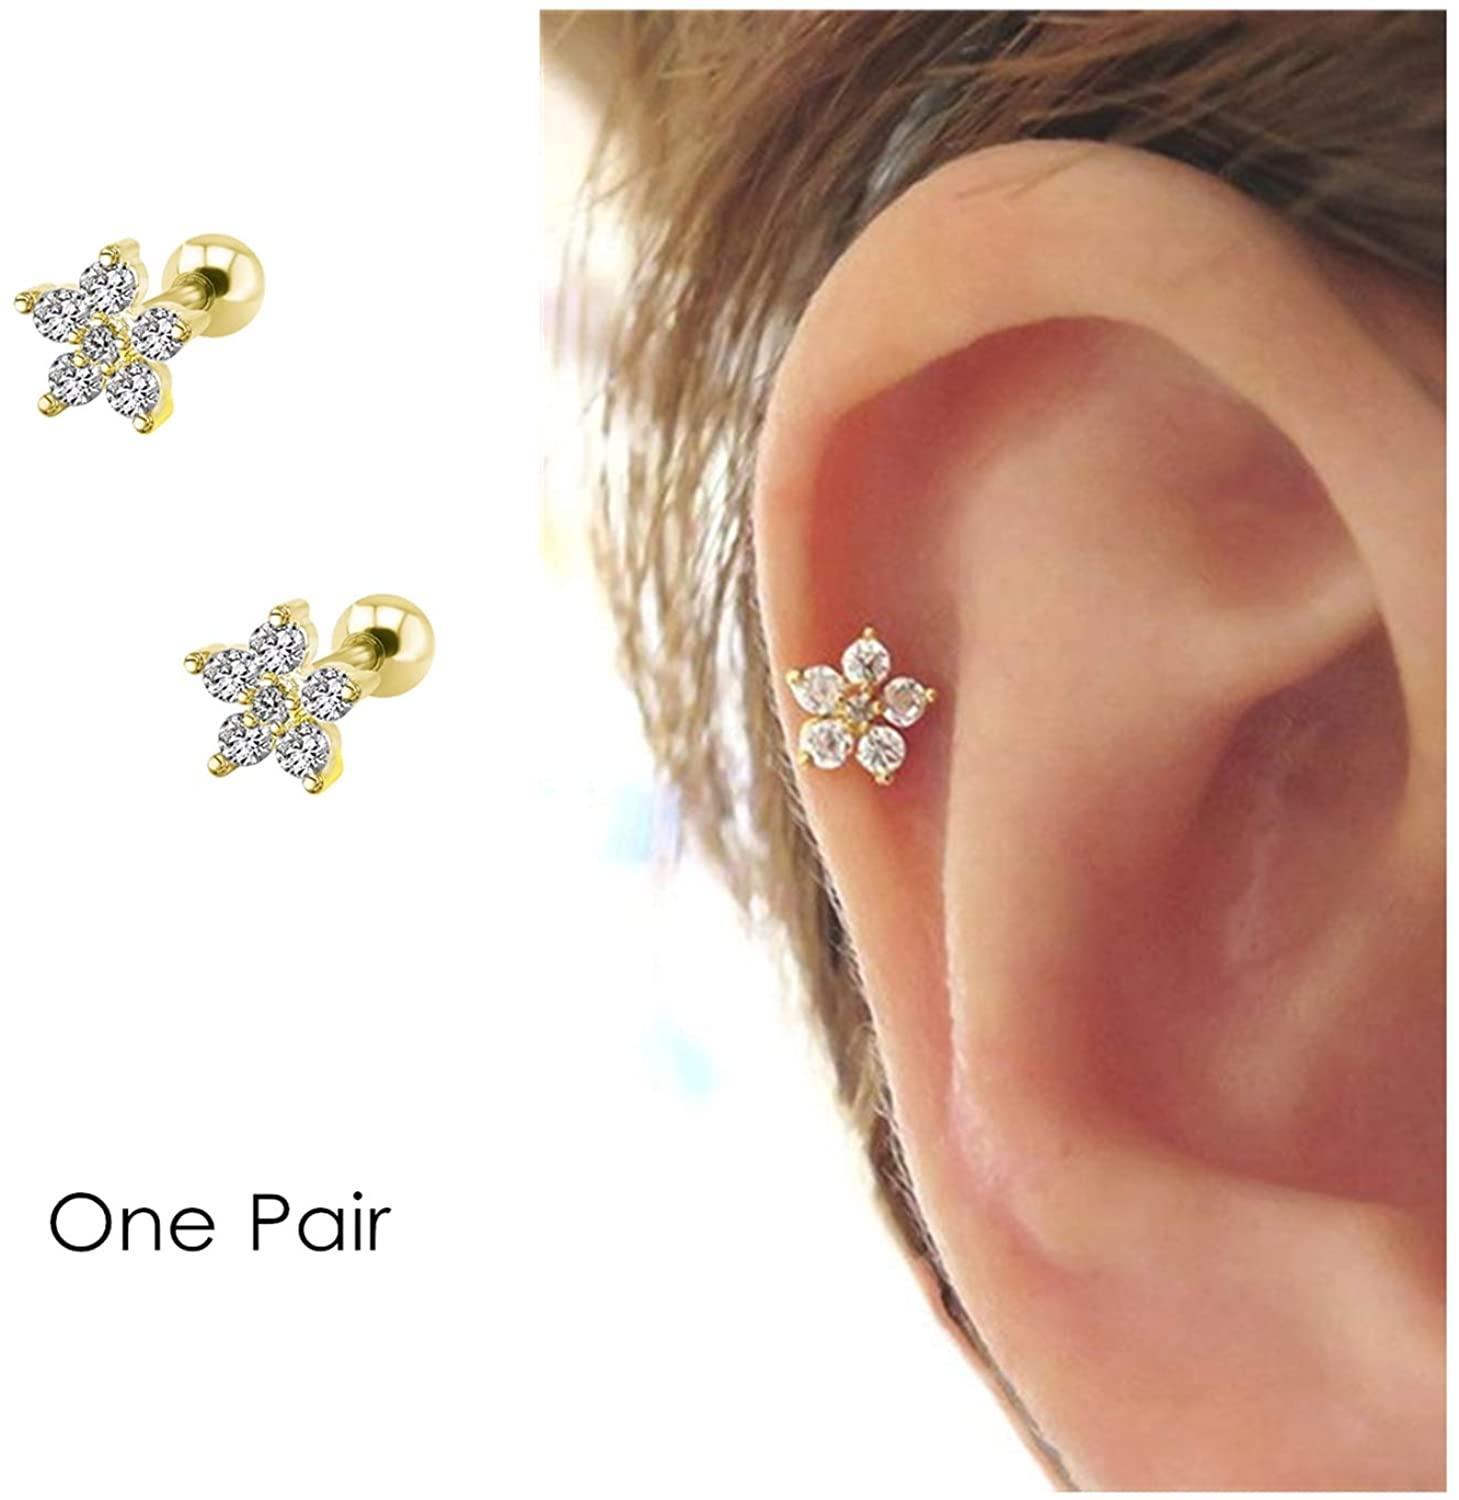 Flower Cartilage Earring CZ Stud Mini Earrings Sale price Earr Free Shipping New Small Tragus